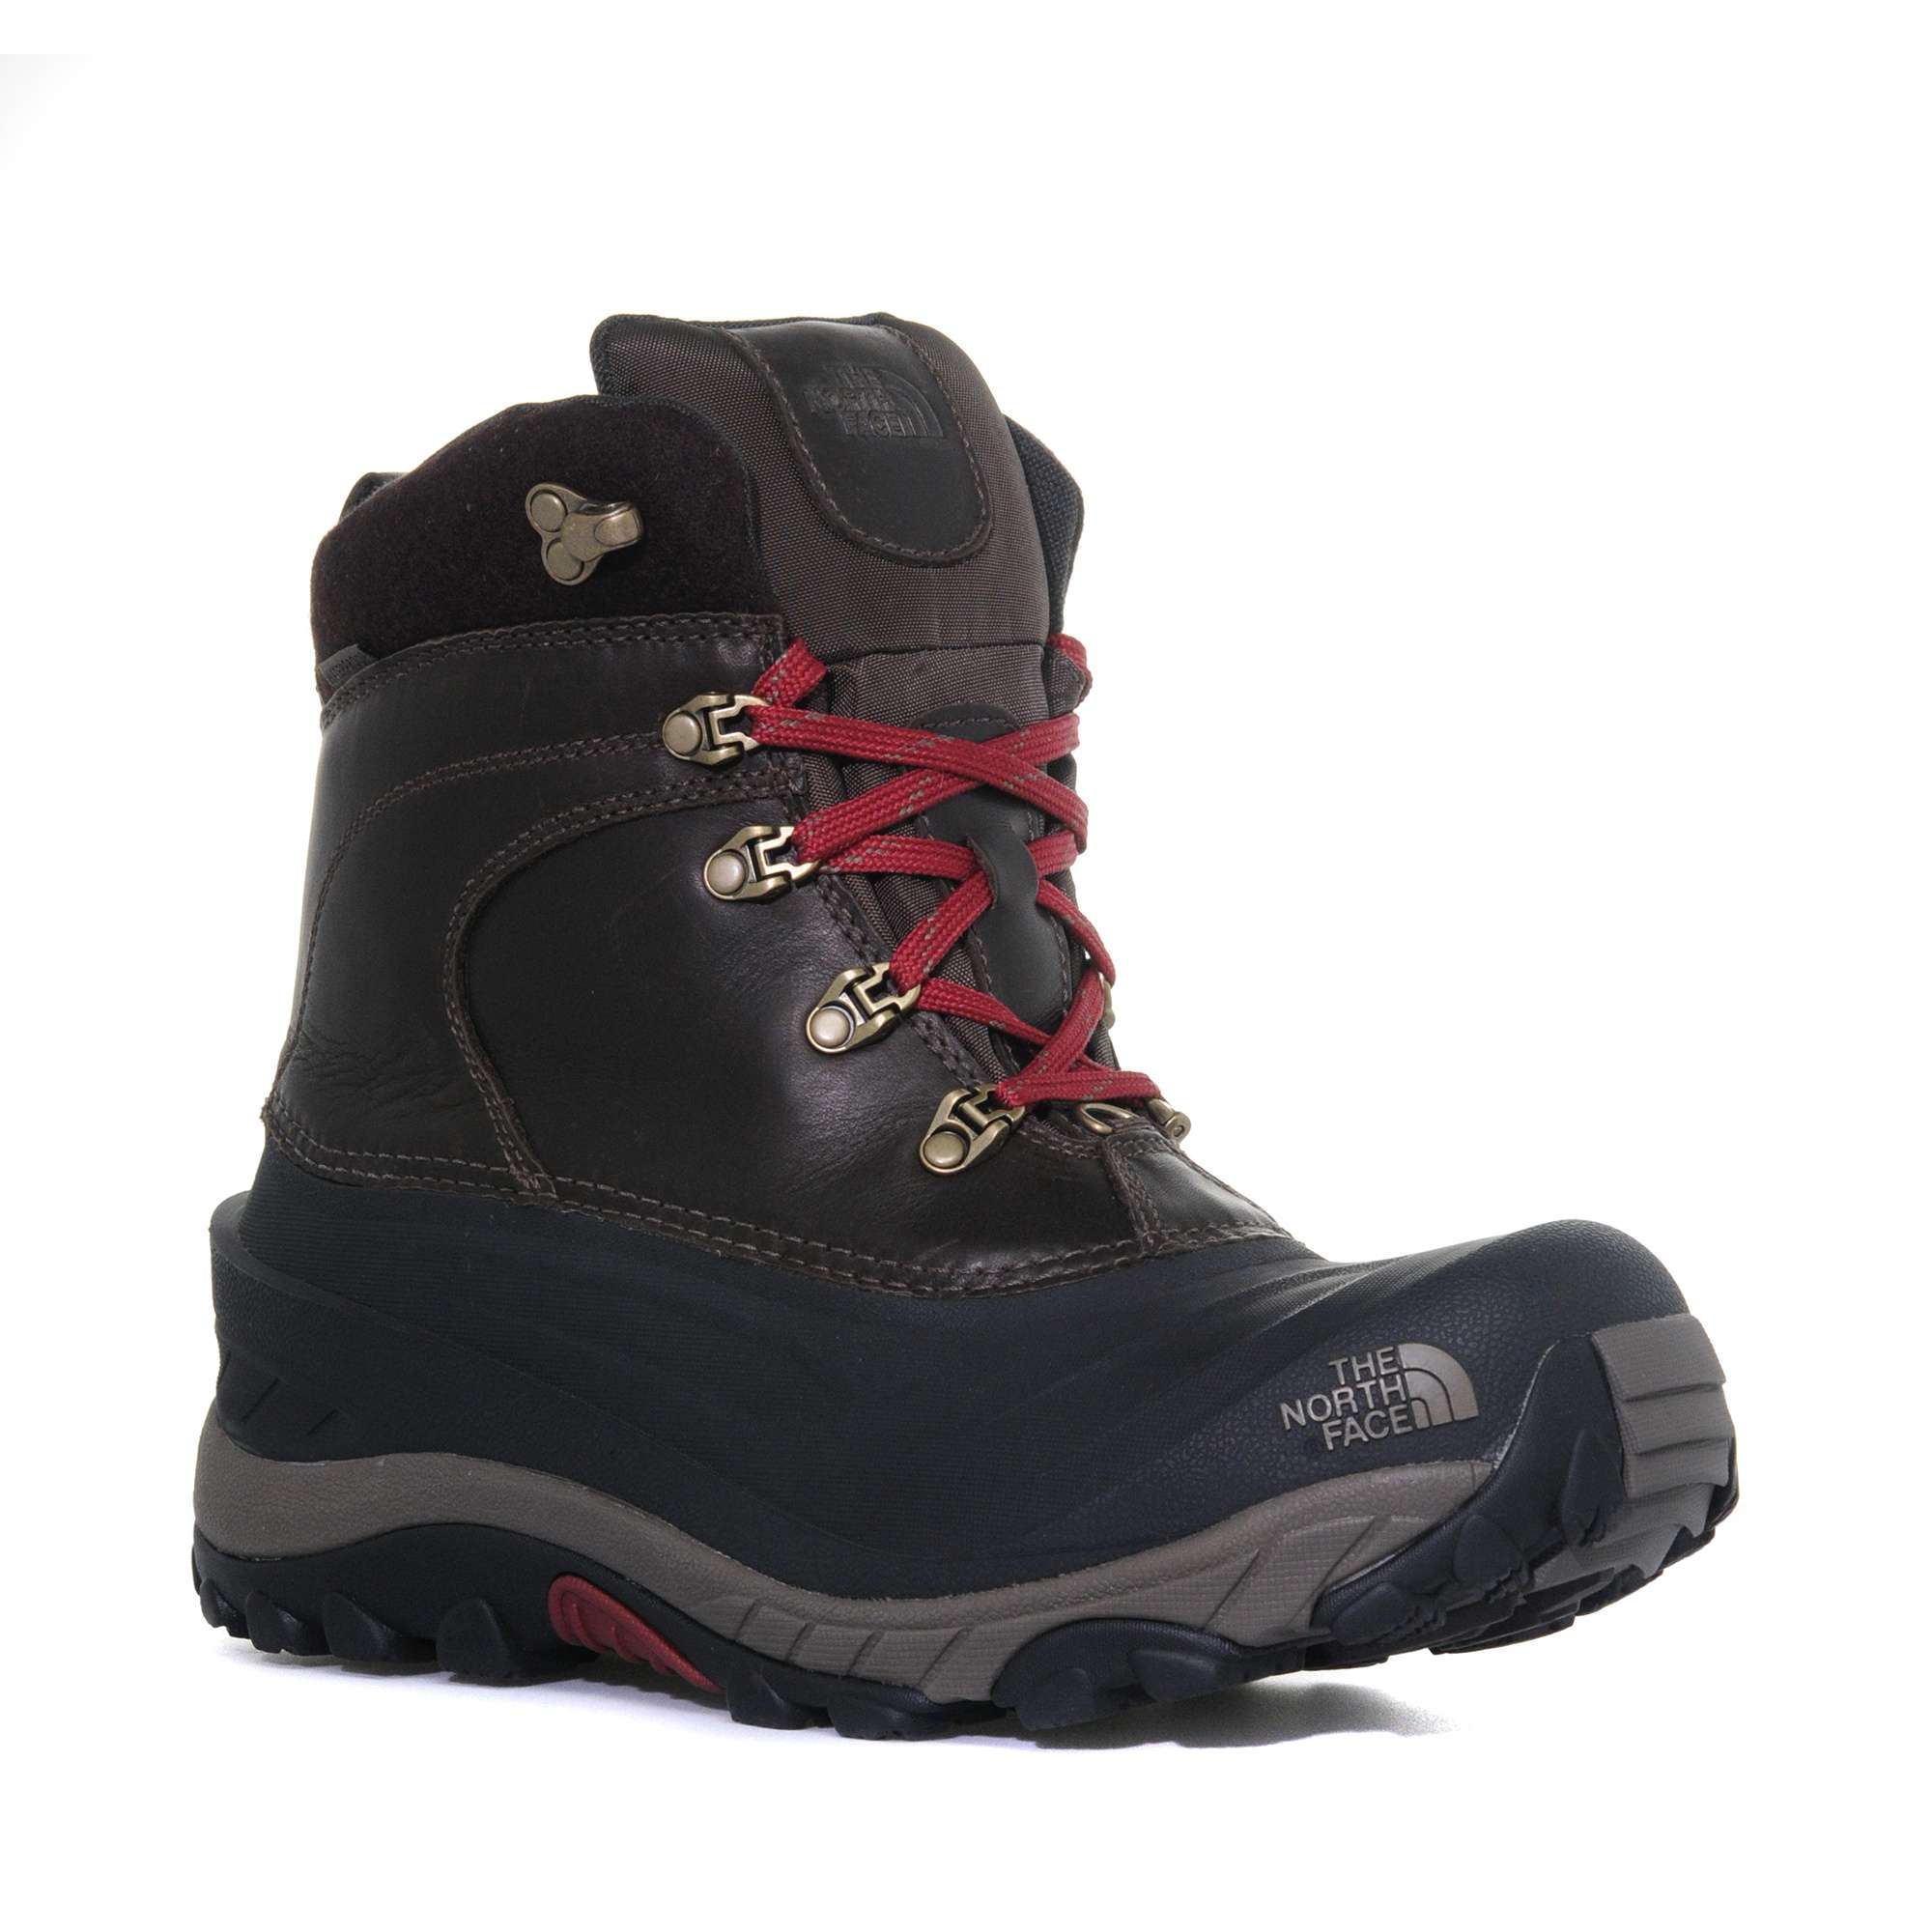 THE NORTH FACE Men's Chilkat II Luxe Winter Boot